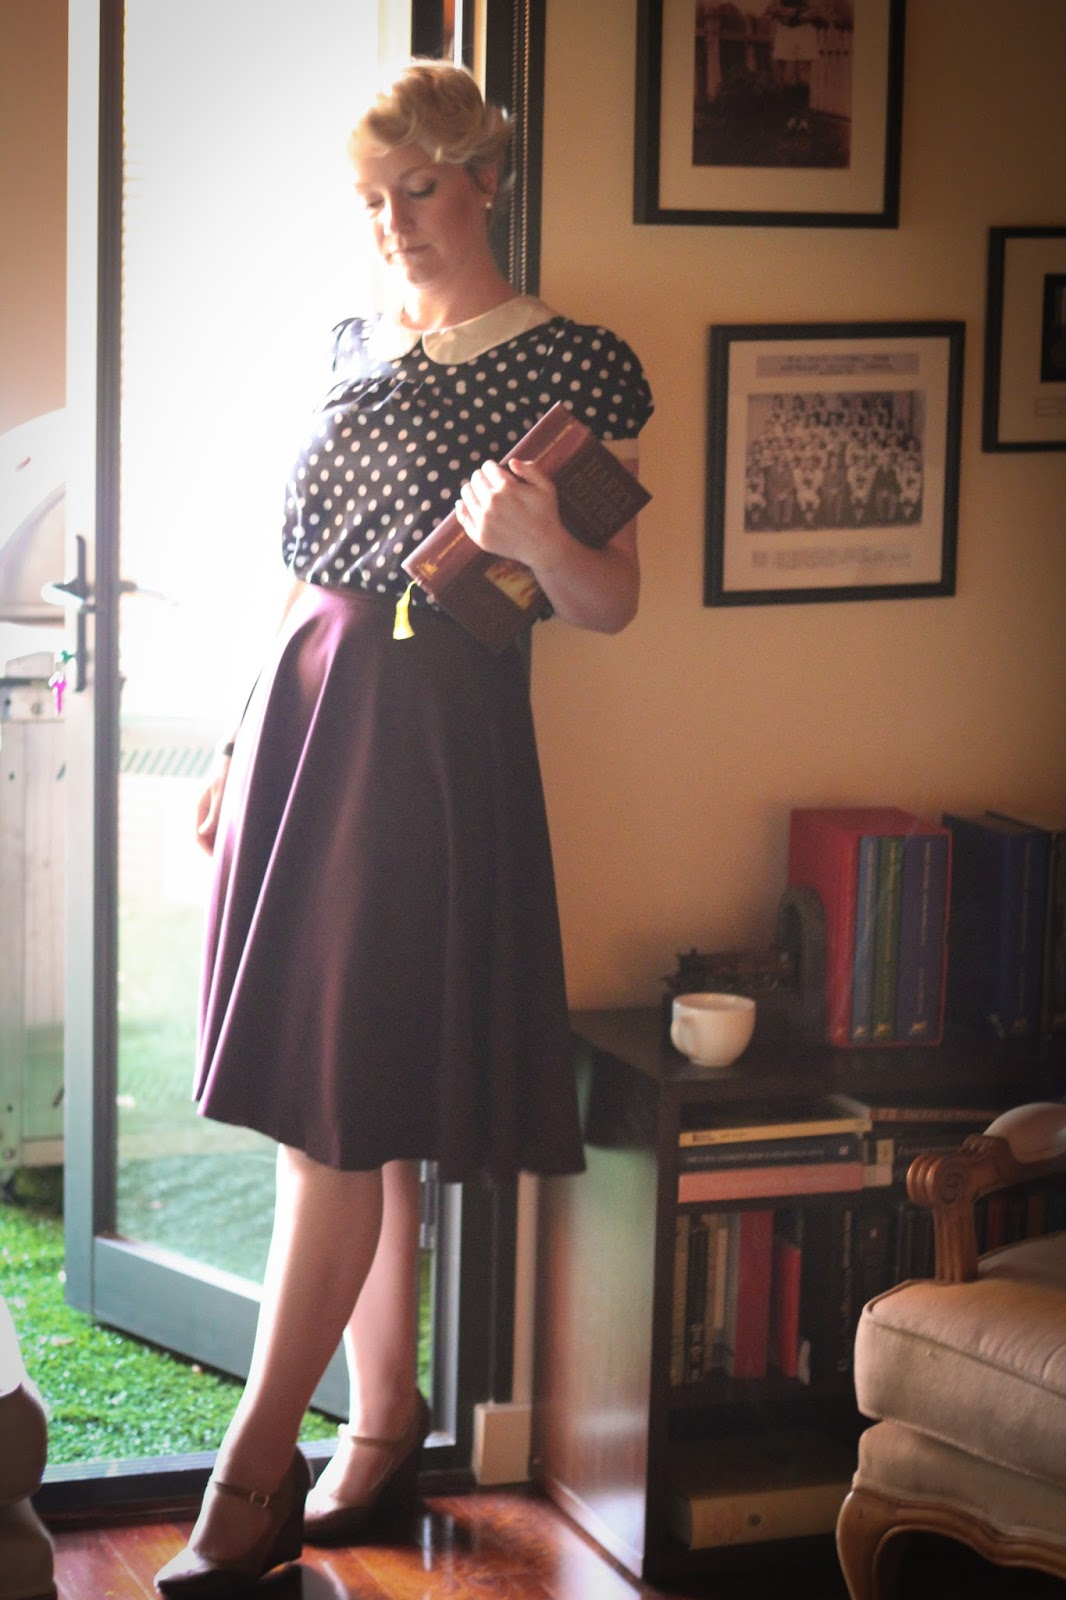 Liana of Finding Femme wears plum Modcloth midi skirt, wedge heel oxfords, and Modcloth navy polka dot peter pan collar blouse.